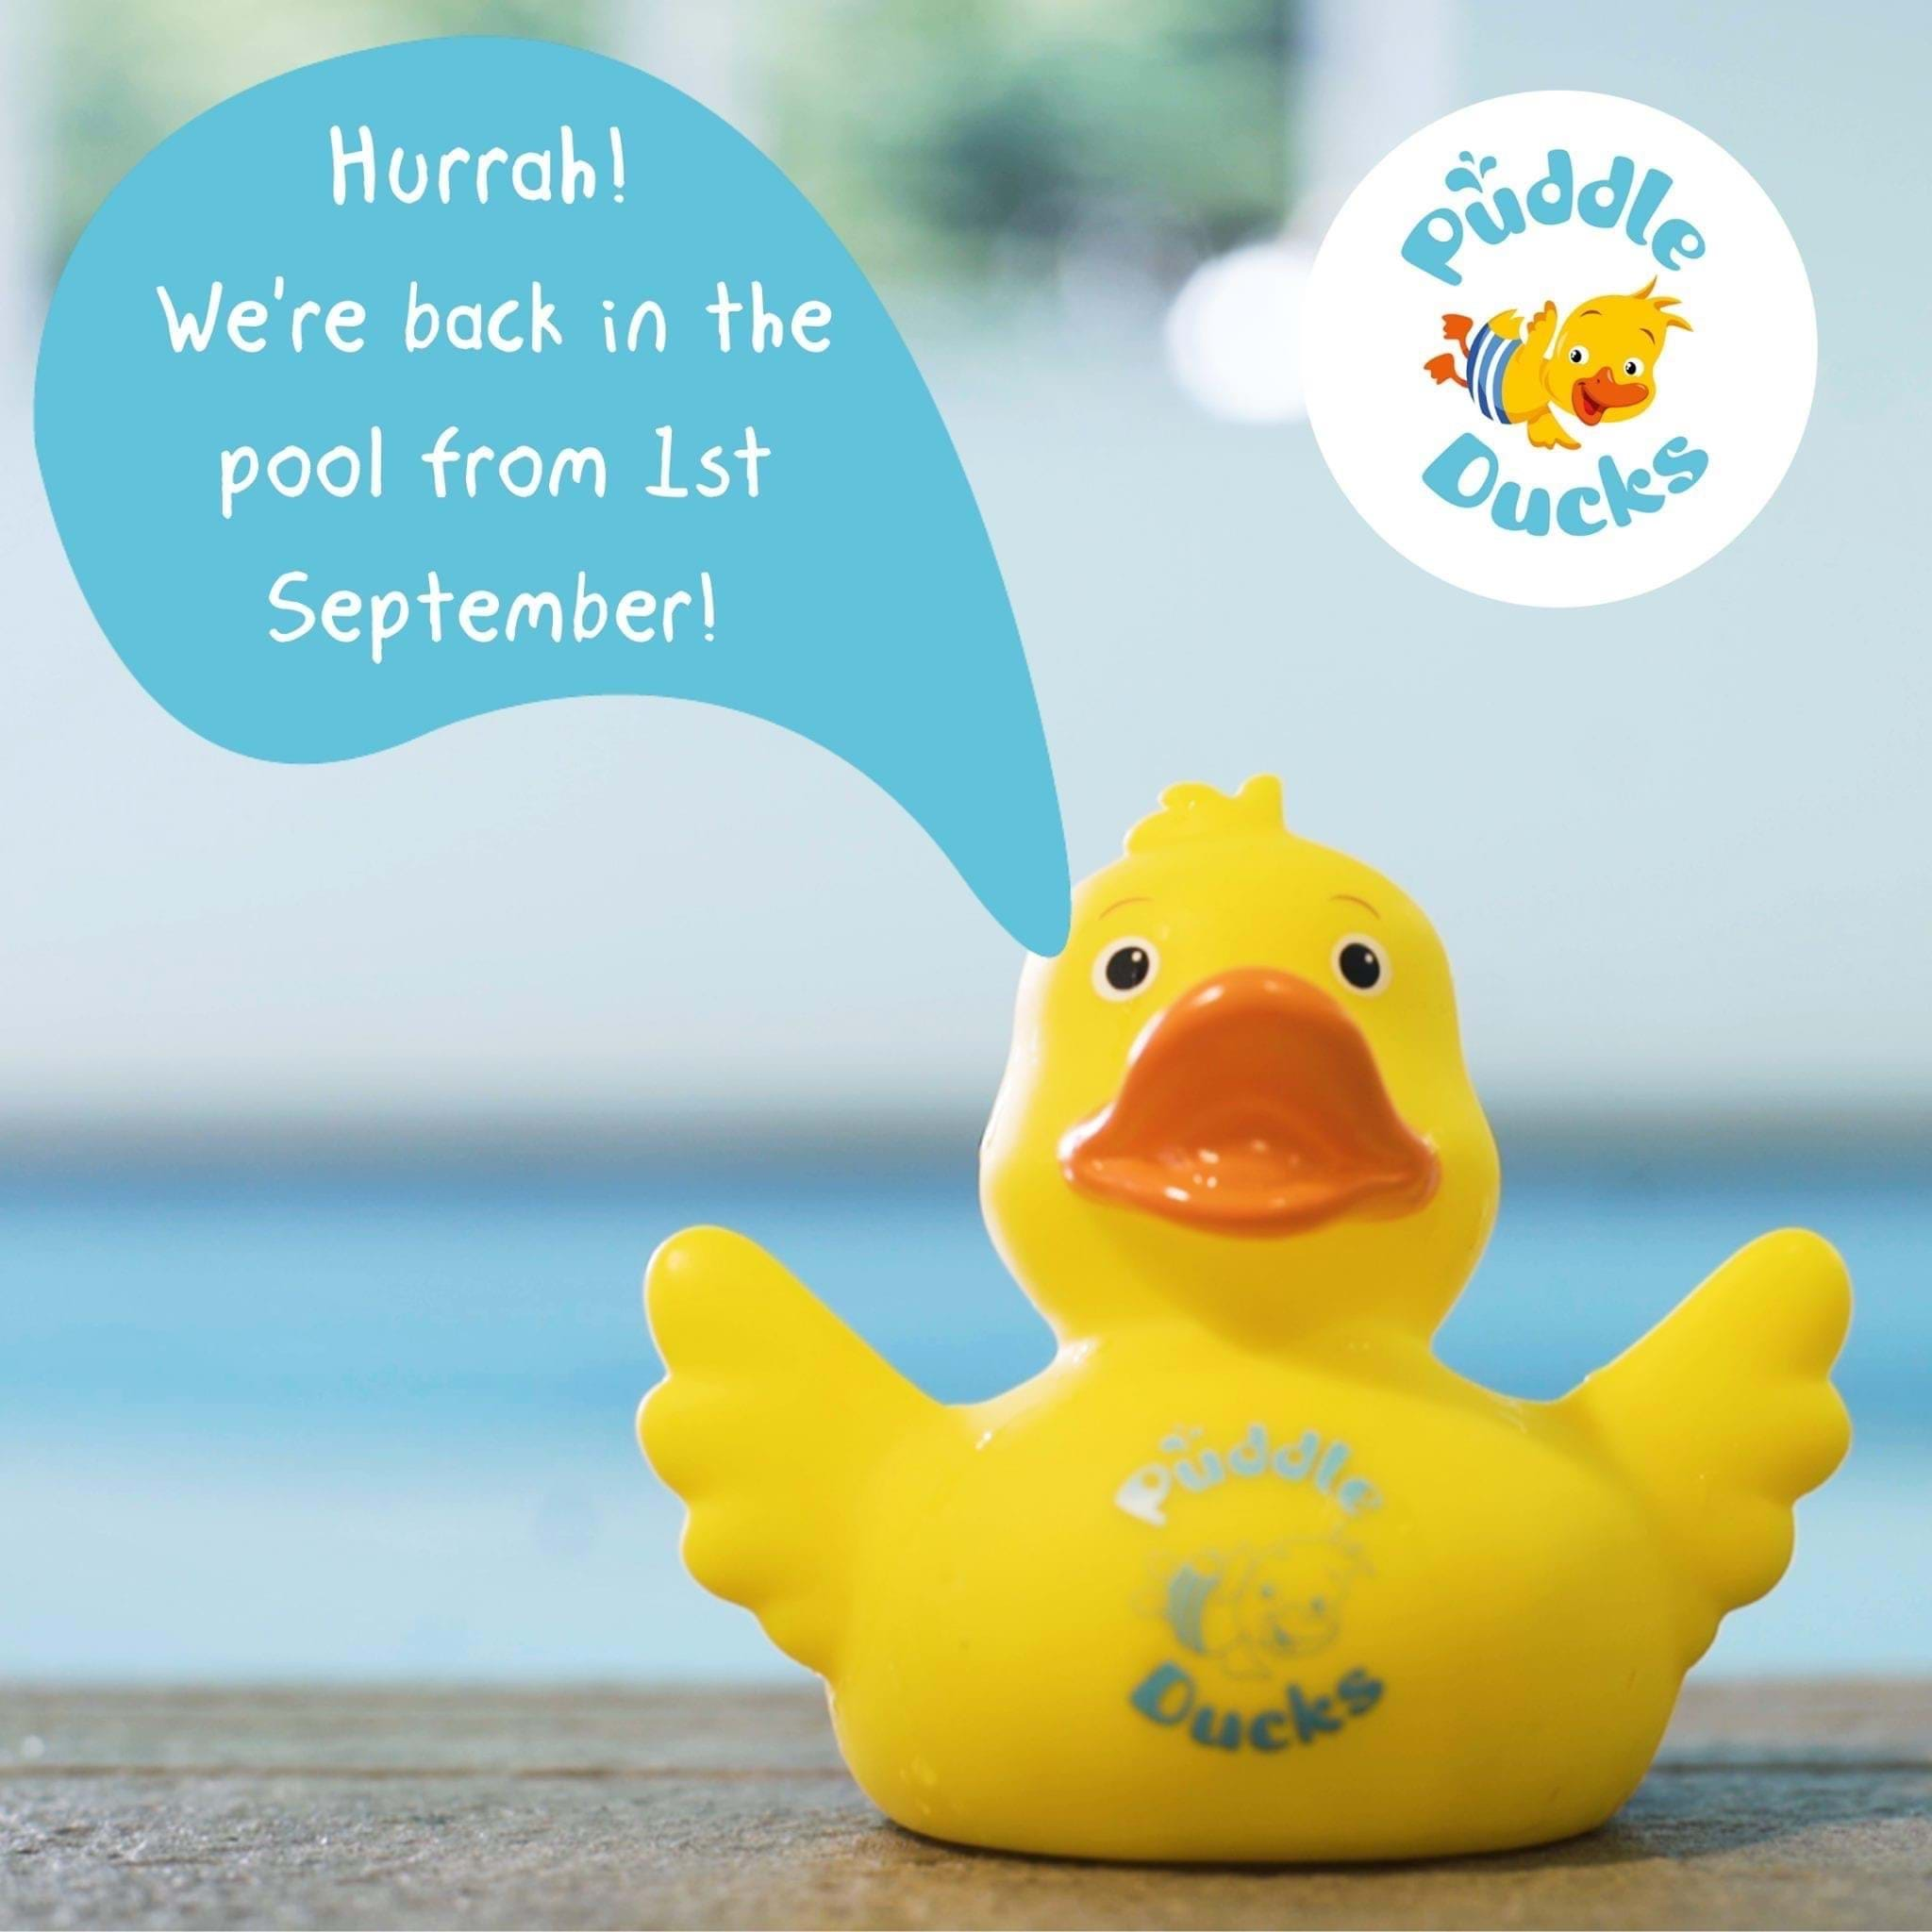 Puddle Ducks IS BACK!